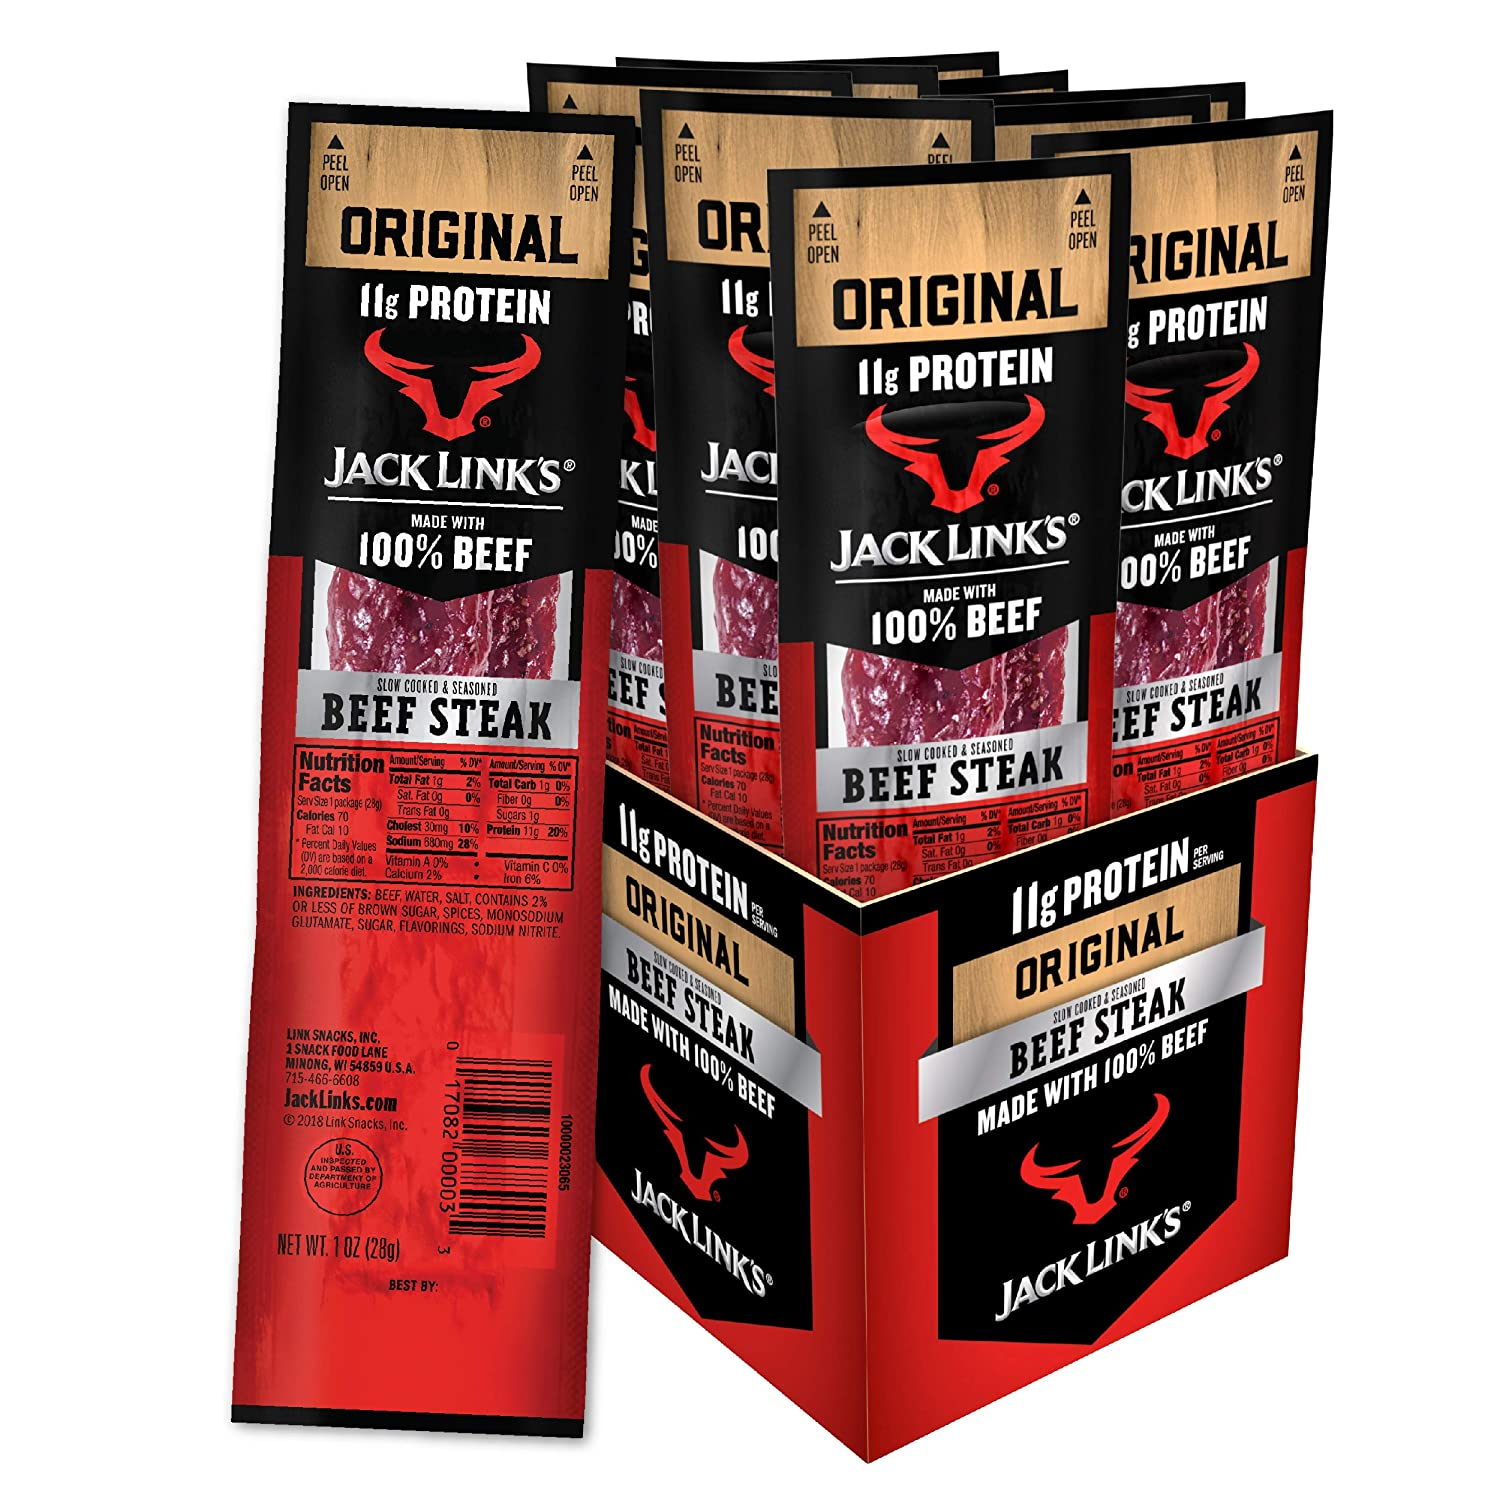 Jack Links Premium Cuts Beef Steak, Original, Strips -Great Protein Snack with 11g of Protein and 1g of Carbs per Serving, Made with 100% Premium Beef, 1 Ounce (Pack of 12)